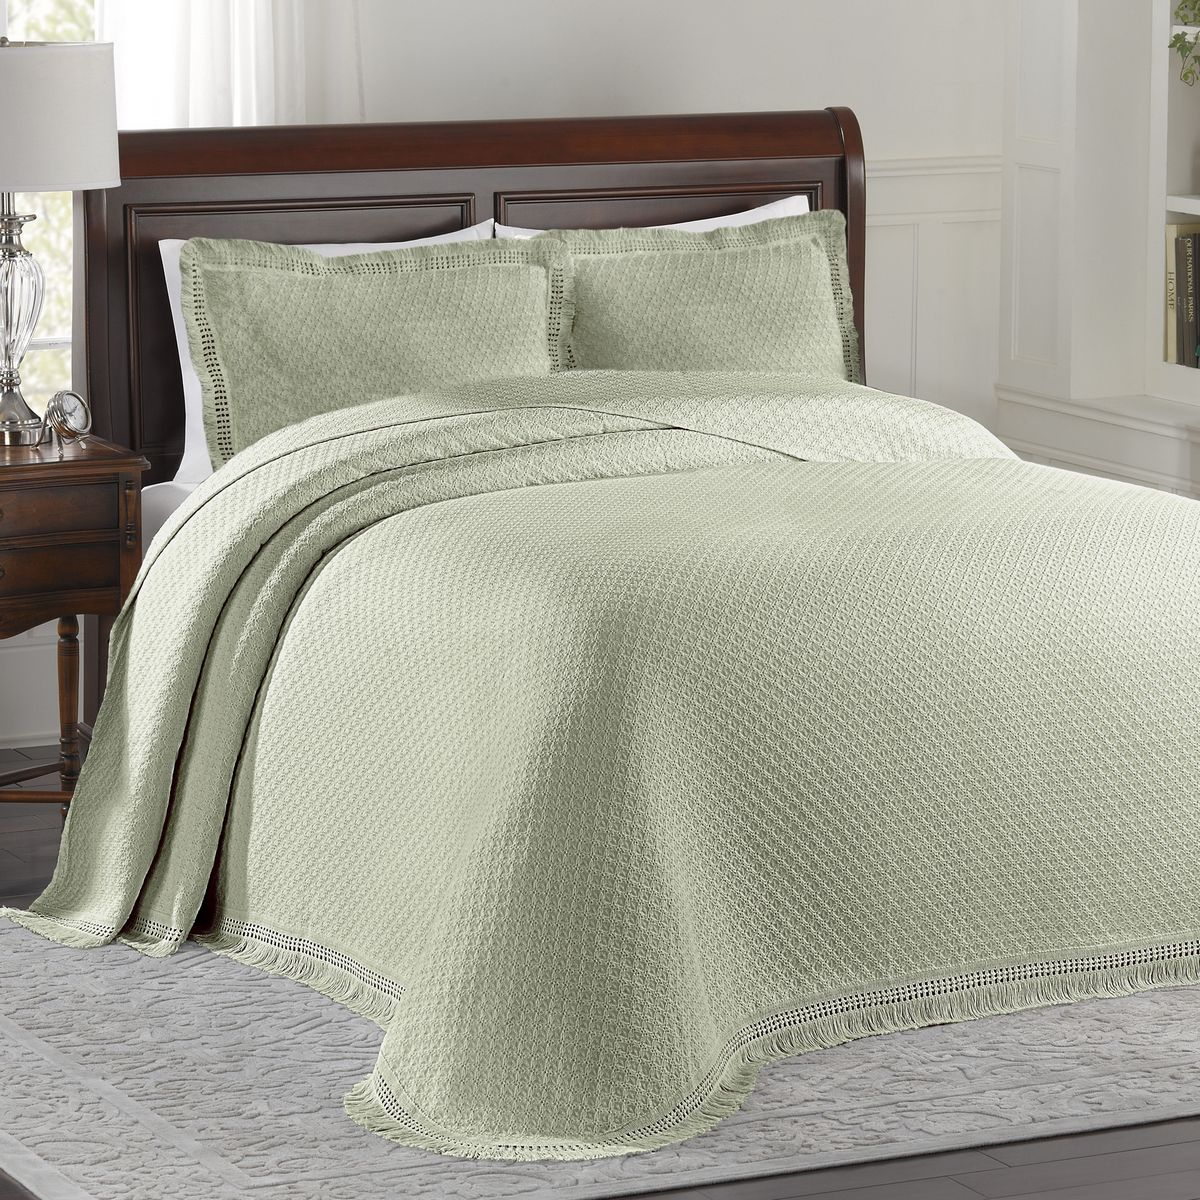 Woven Jacquard Sage By Lamont Home Beddingsuperstore Com